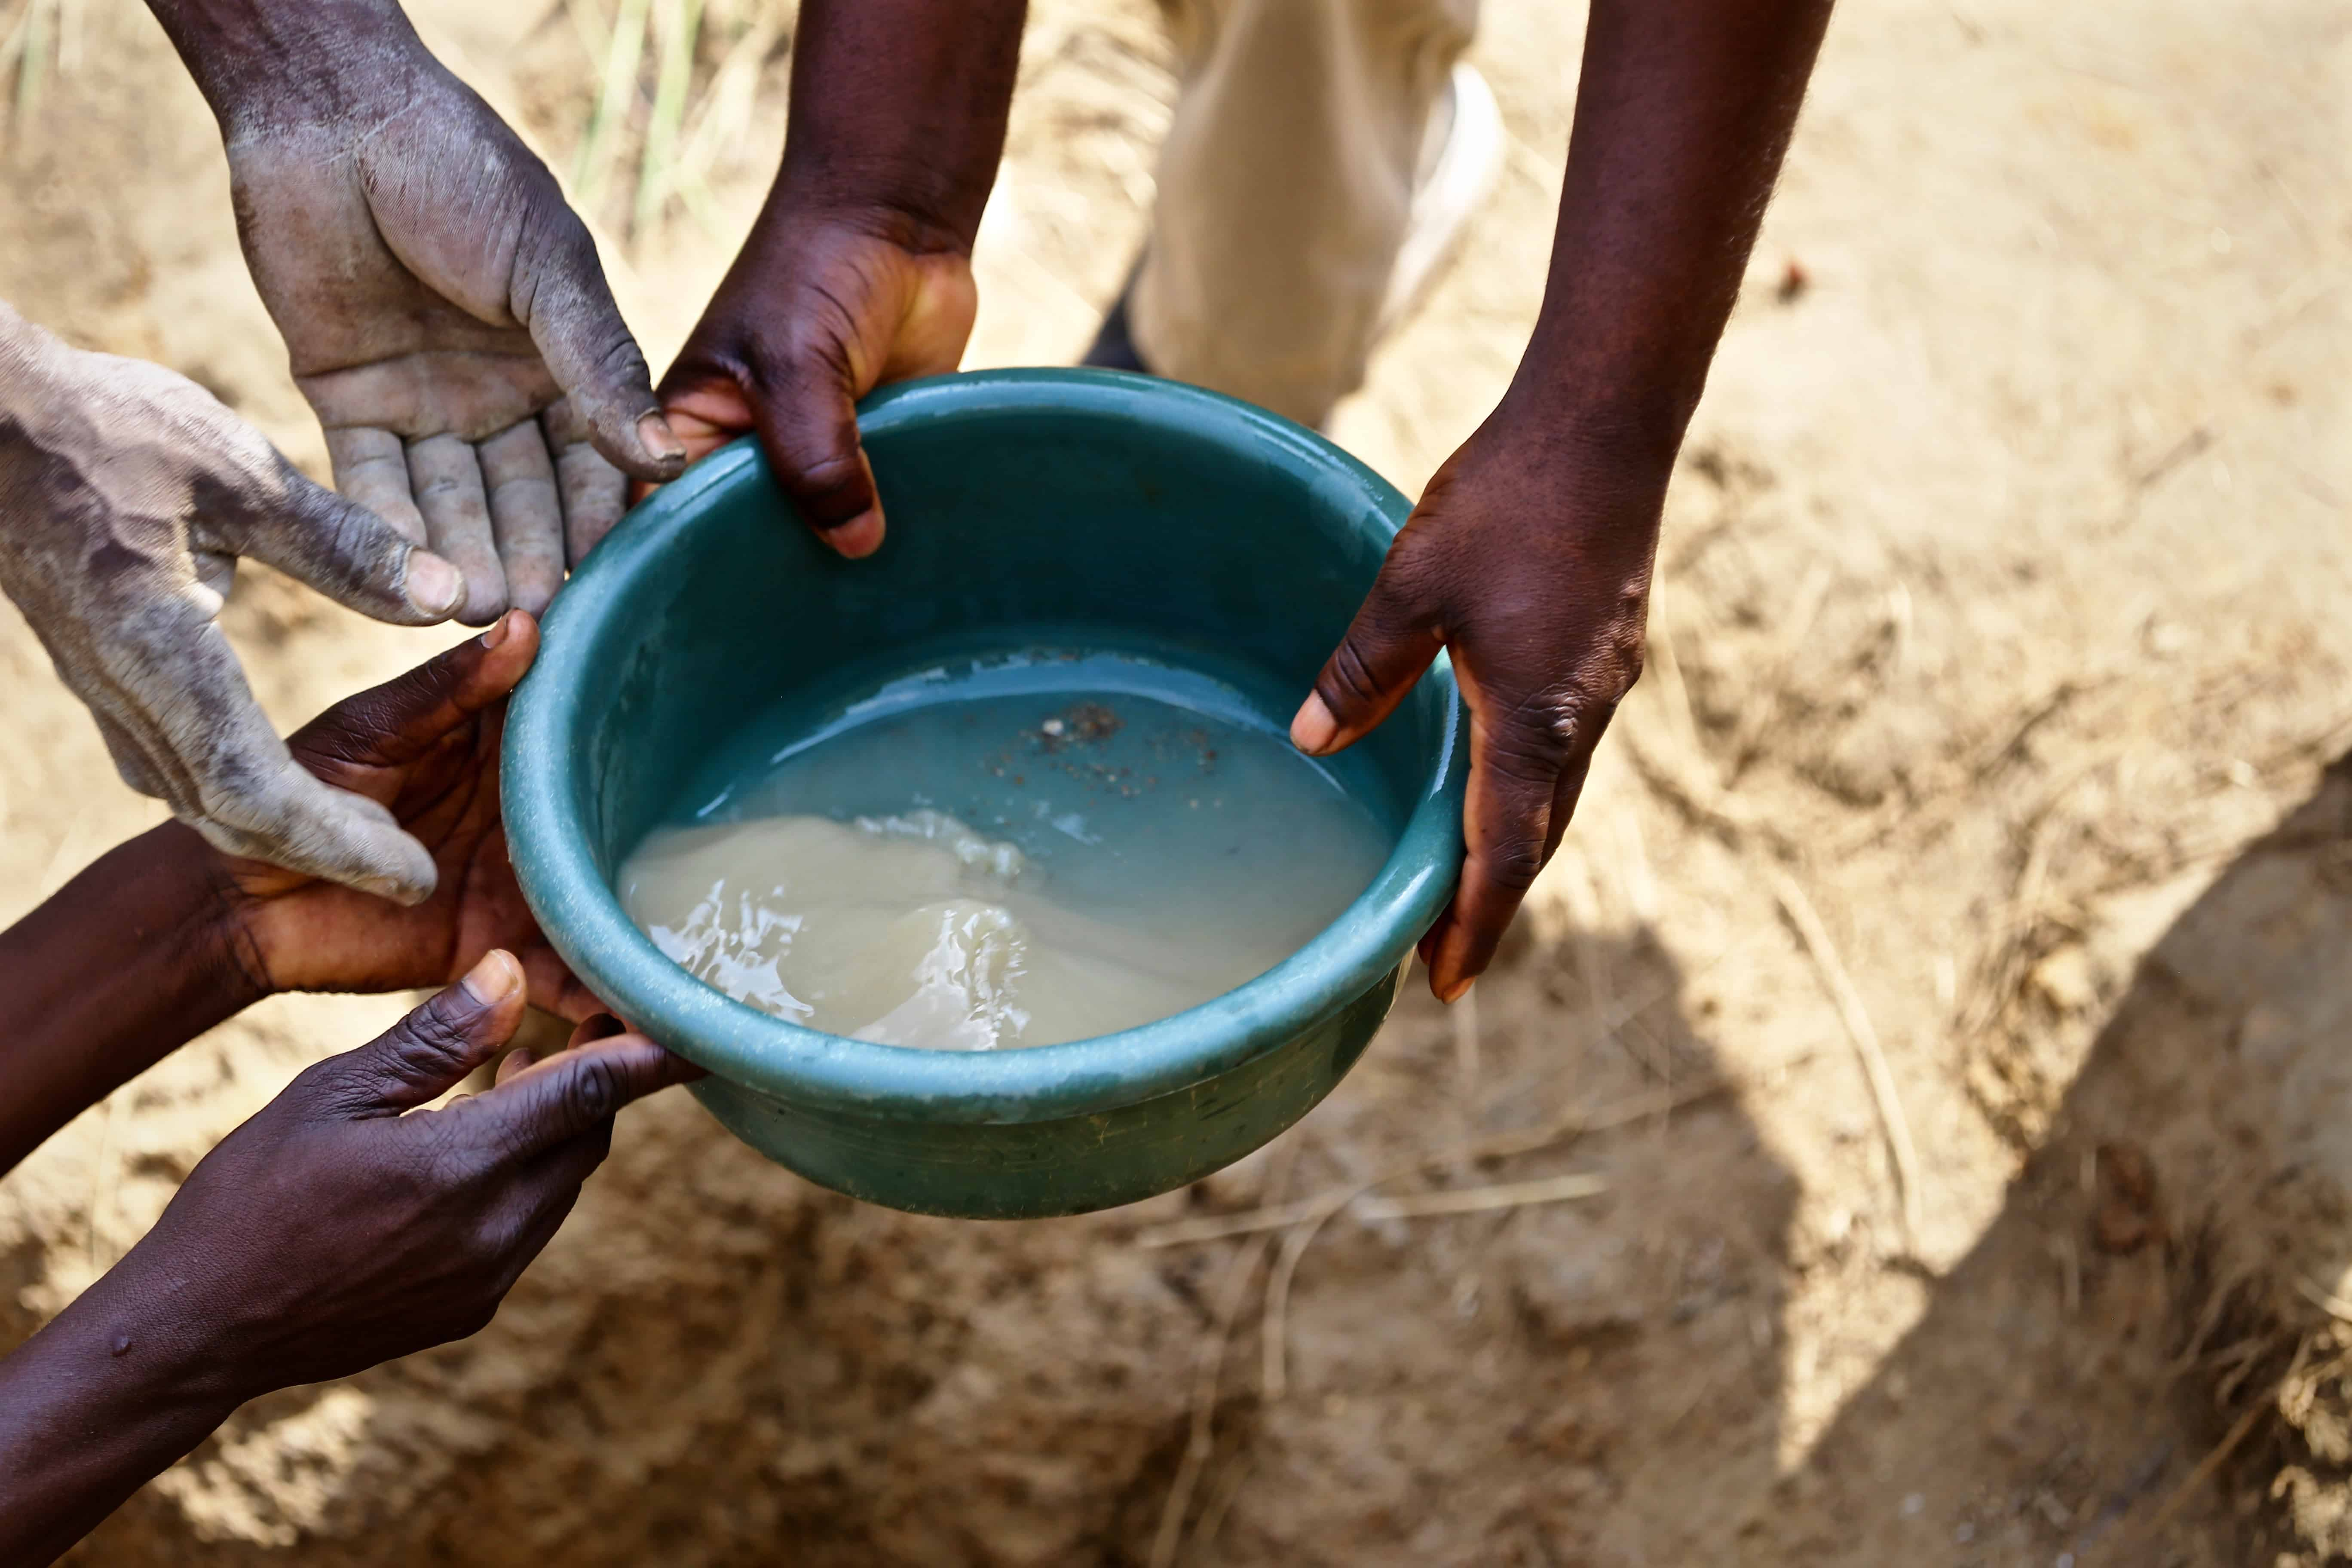 Weekly Digest: National food security inversely correlated with cholera incidence; Rotavirus vaccine reduces hospitalizations in Kenyan children; Maternal mortality declining globally.